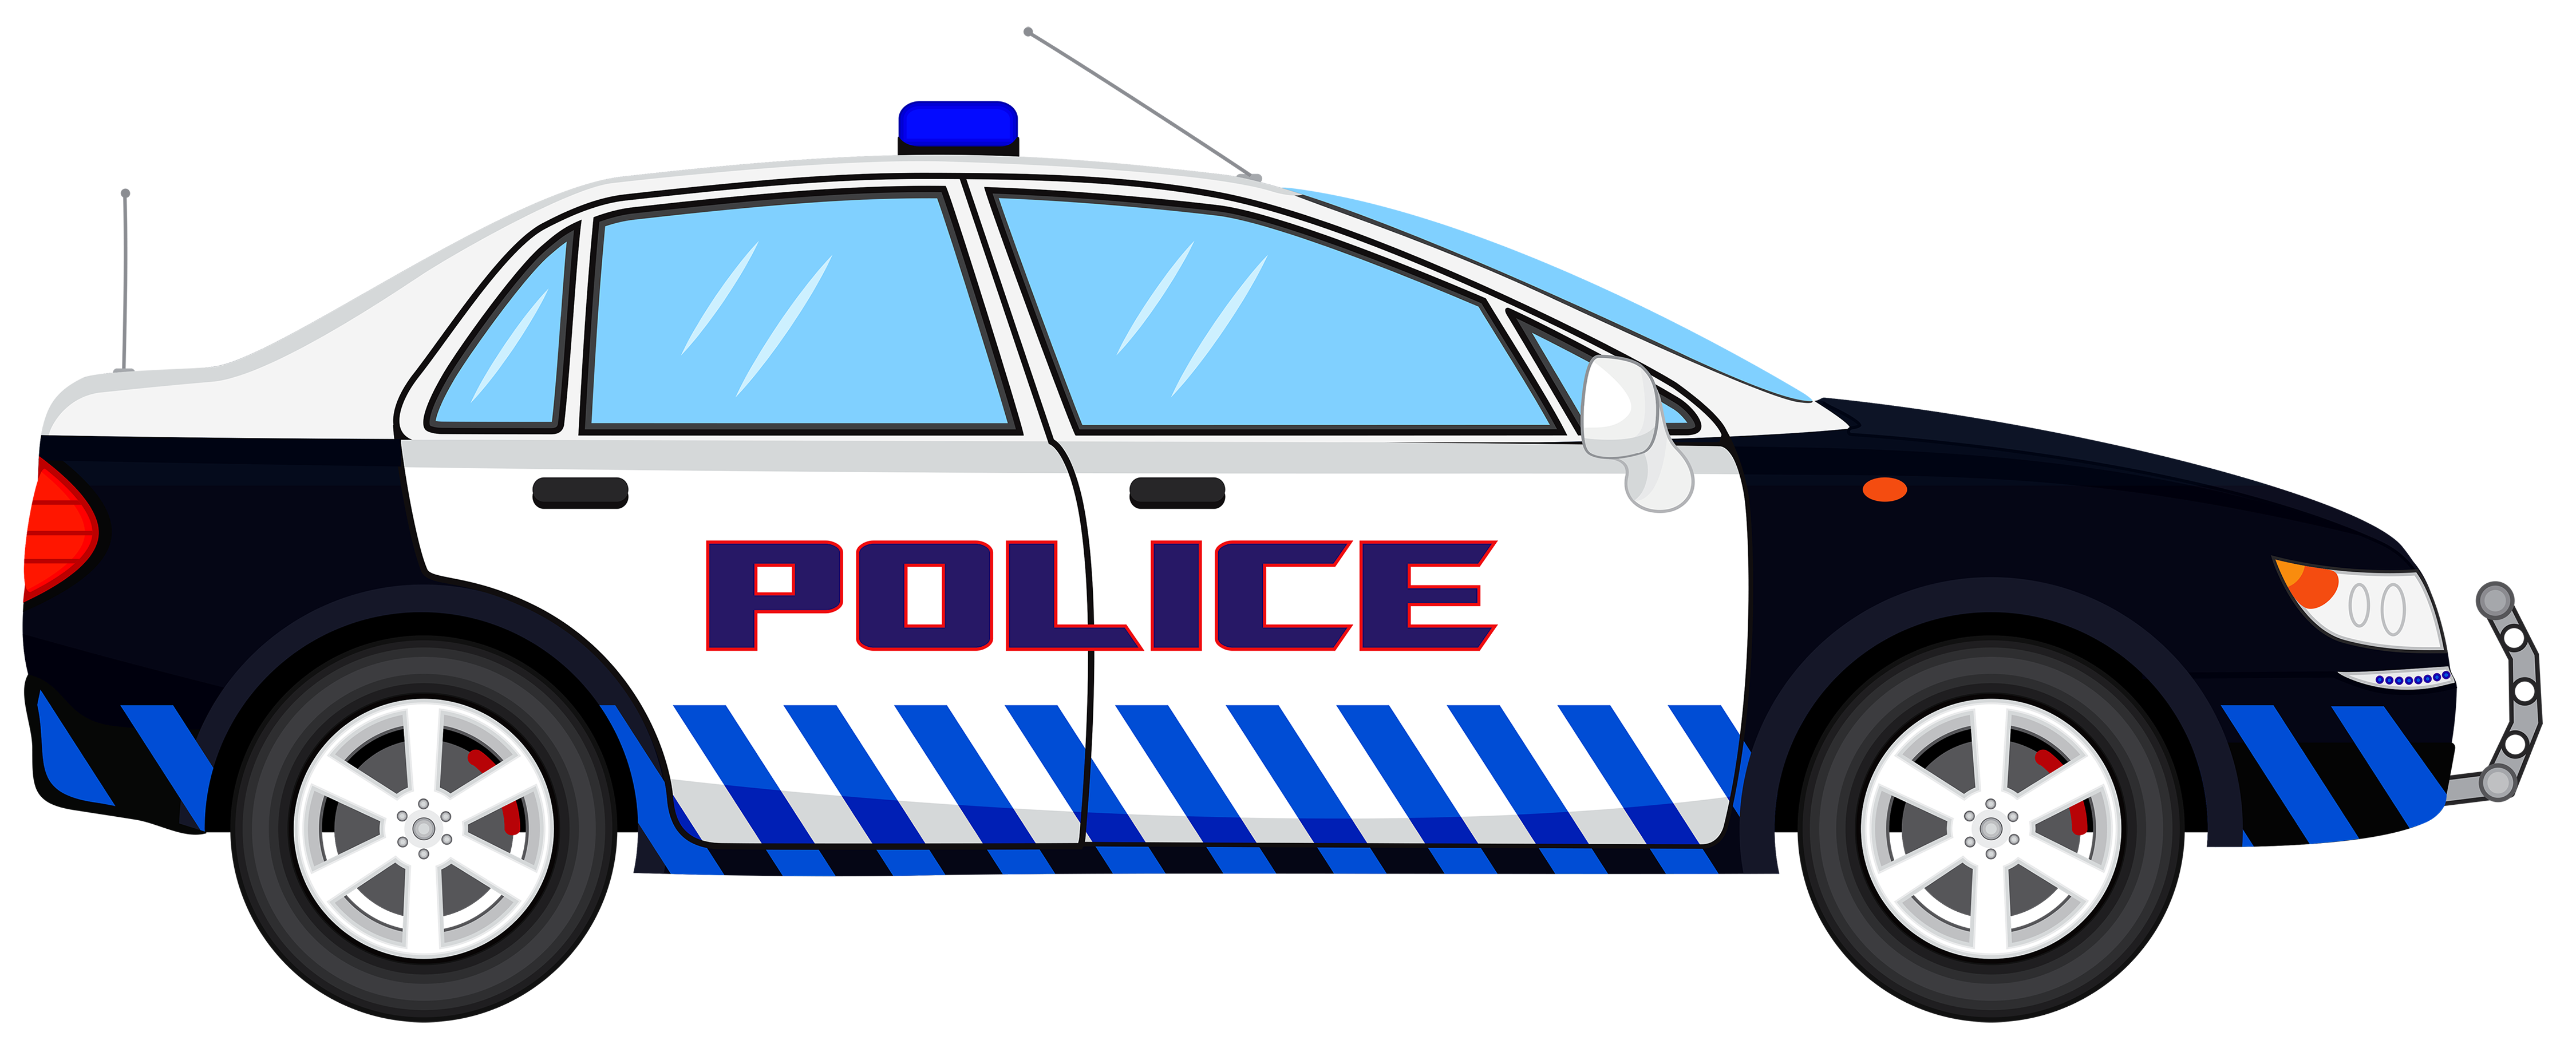 Police car clipart free images.